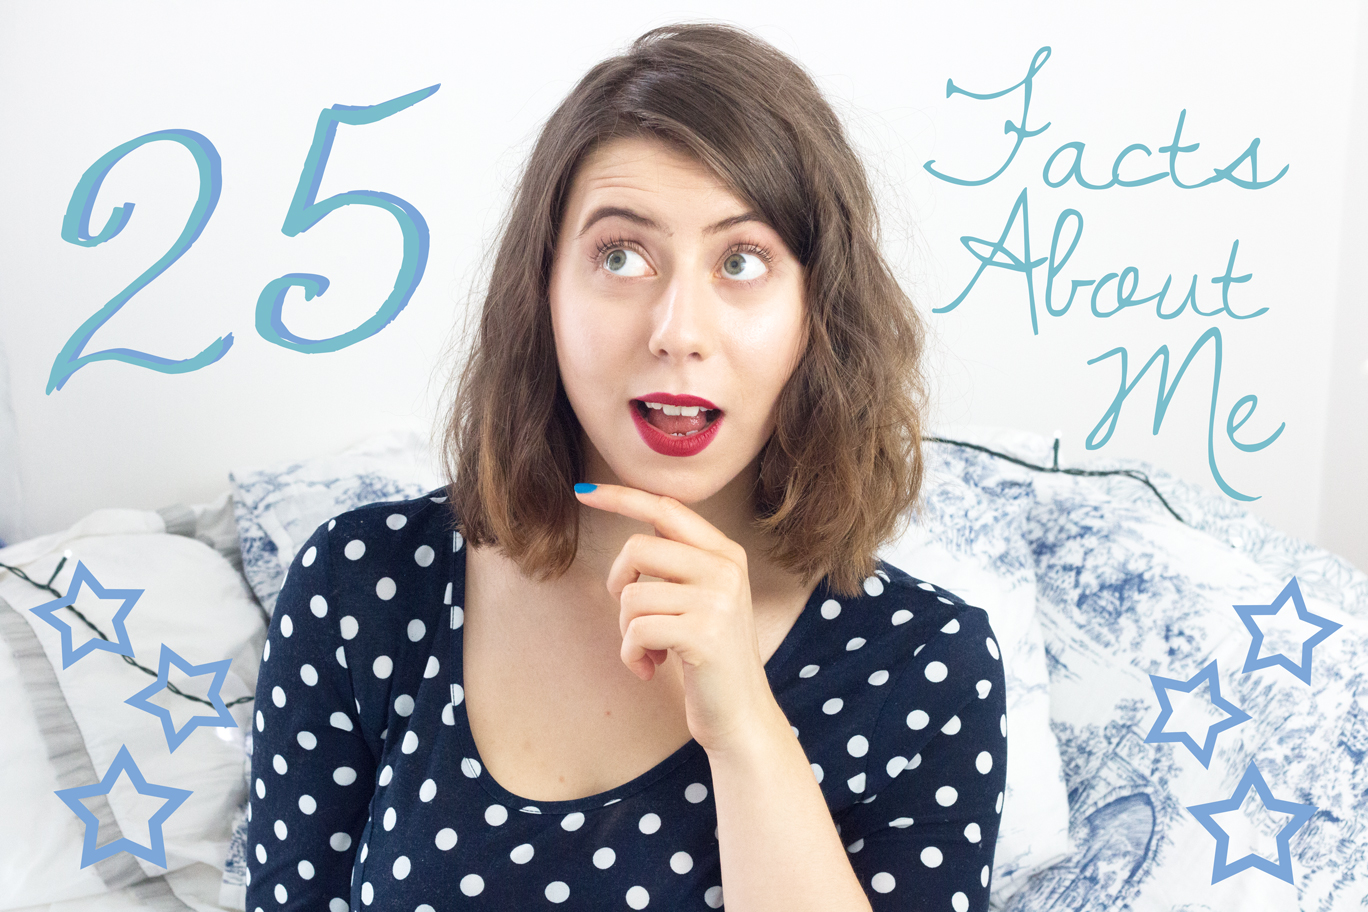 THE VIDEO: 25 FACTS ABOUT ME